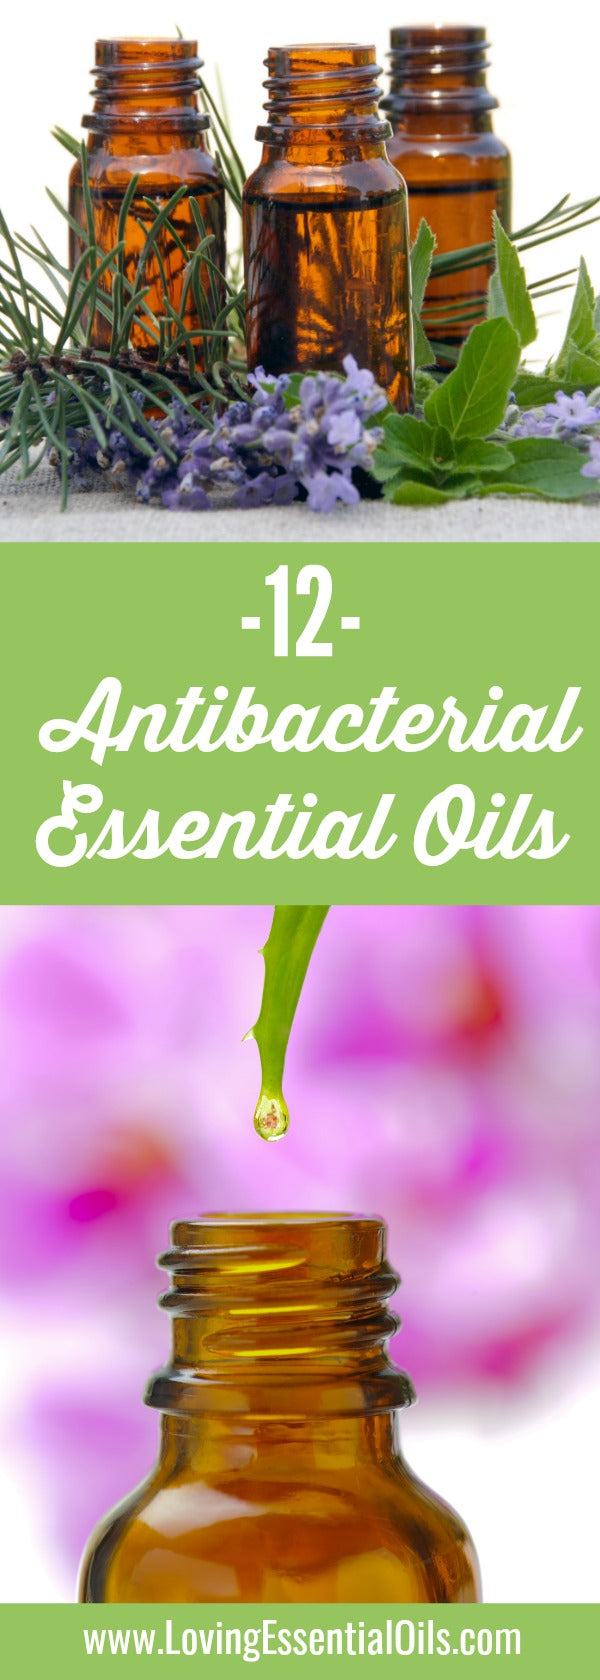 why are essential oils antibacterial